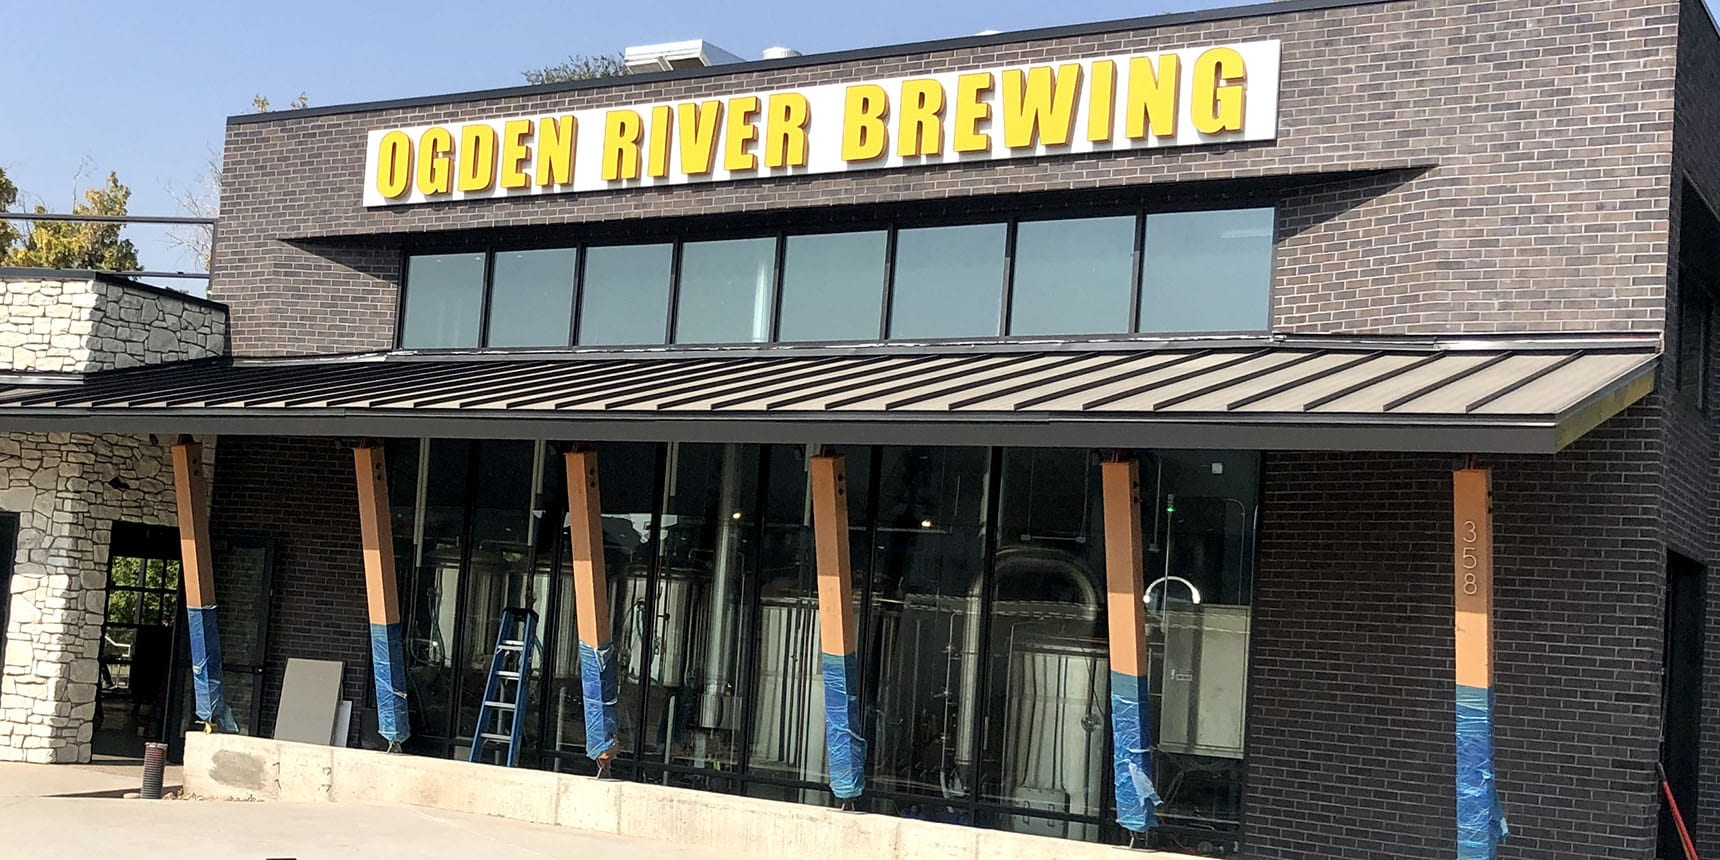 Exterior of Ogden River Brewing - Oct. 6, 2020